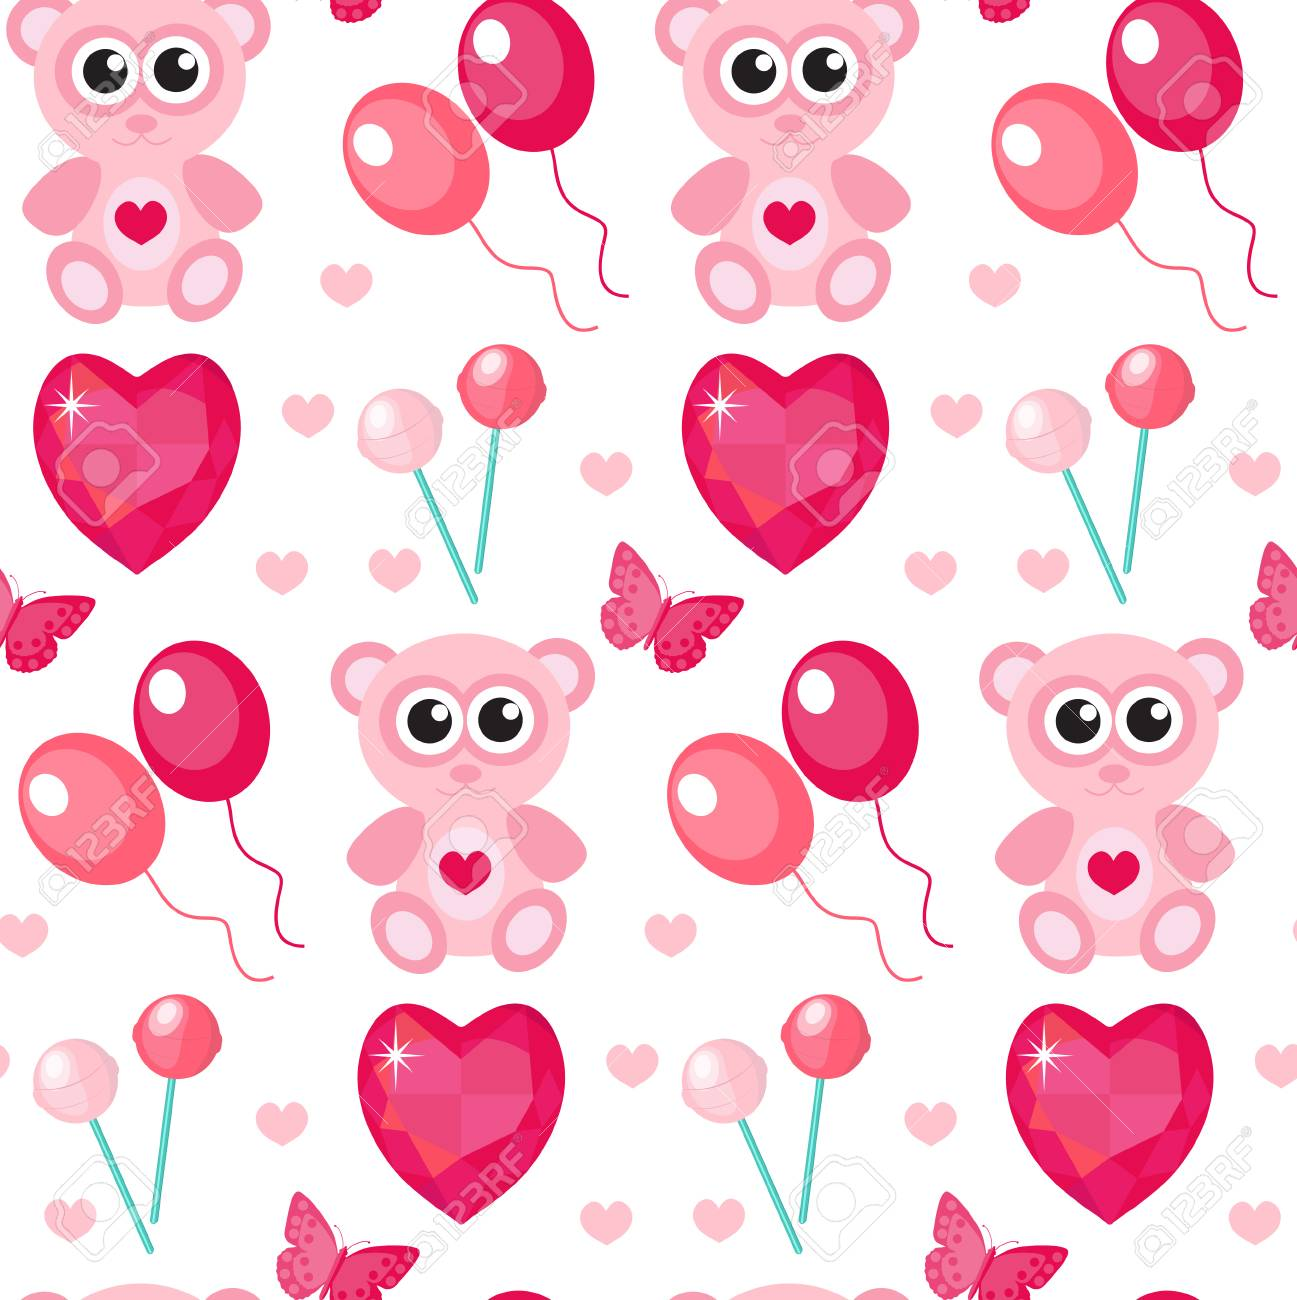 Cute seamless pattern valentines day with teddy bear balls cute seamless pattern valentines day with teddy bear balls hearts love romance voltagebd Choice Image